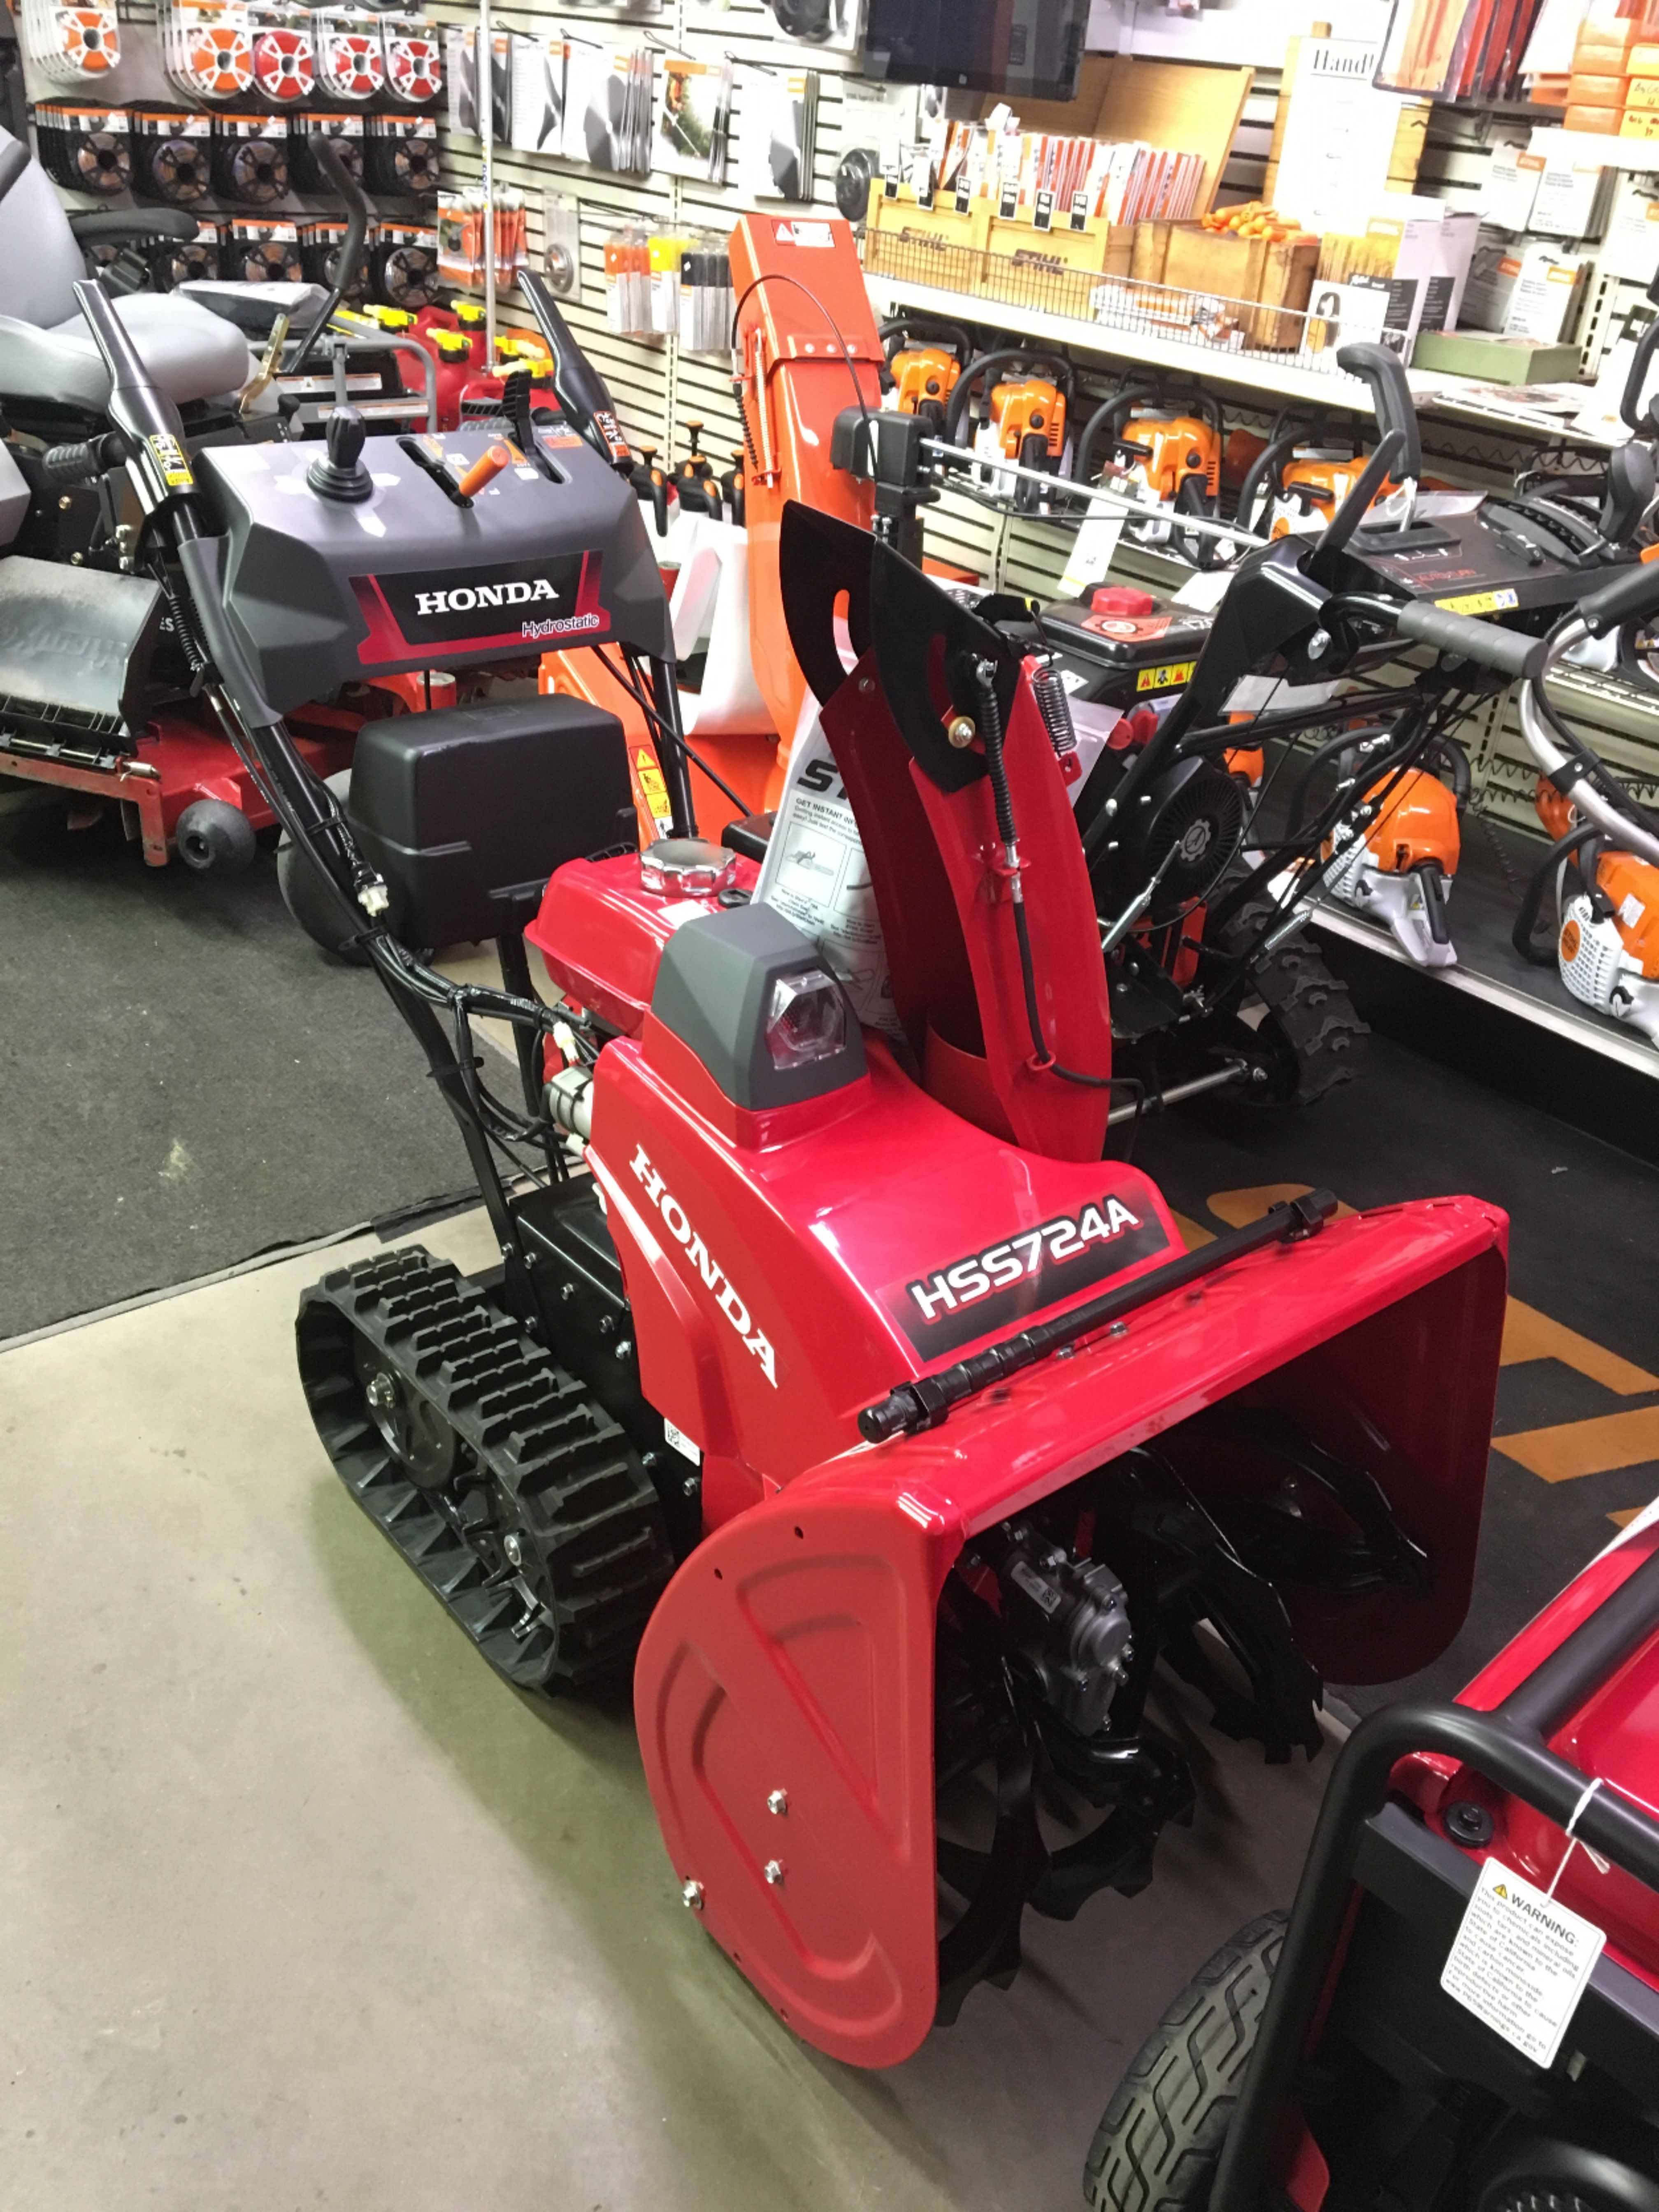 Being prepared for the snow always gives peace of mind and no worries. Buy a Honda Snowblower HSS724A track with electric start and be ready to conquer any snow storm! Call: 570-739-2772 Address: 2 Kiehners Road, Schuylkill Haven, PA 17922 #SnowBlower #MovingSnow #Snow #Storms #SnowRemoval #BlowingSnow #Honda #NeedASnowBlower #NoShoveling #Backup #Peace #HSS724 #Track #TrackSnowBlower #Kramers #KramersPowerEquipment #PowerEquipment #HondaSnowBlower #KramersPower